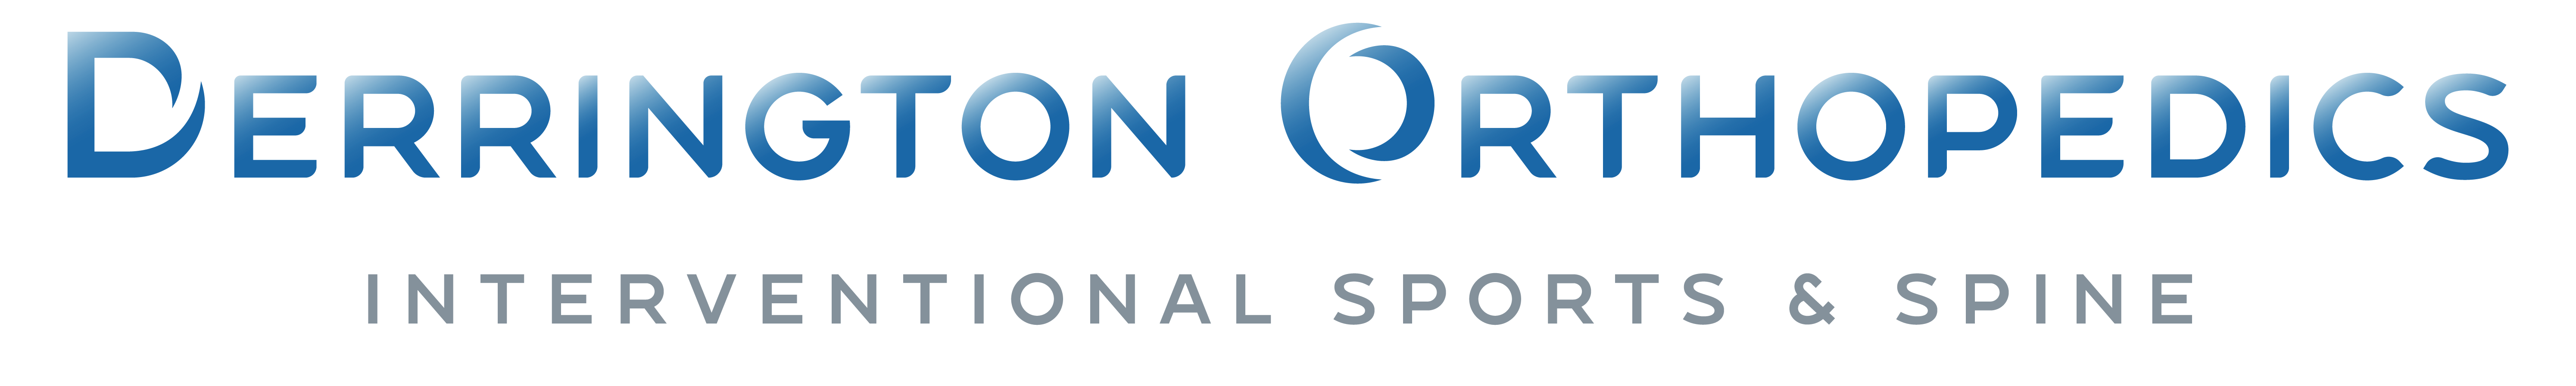 Derrington Orthopedics – Interventional Sports and Spine